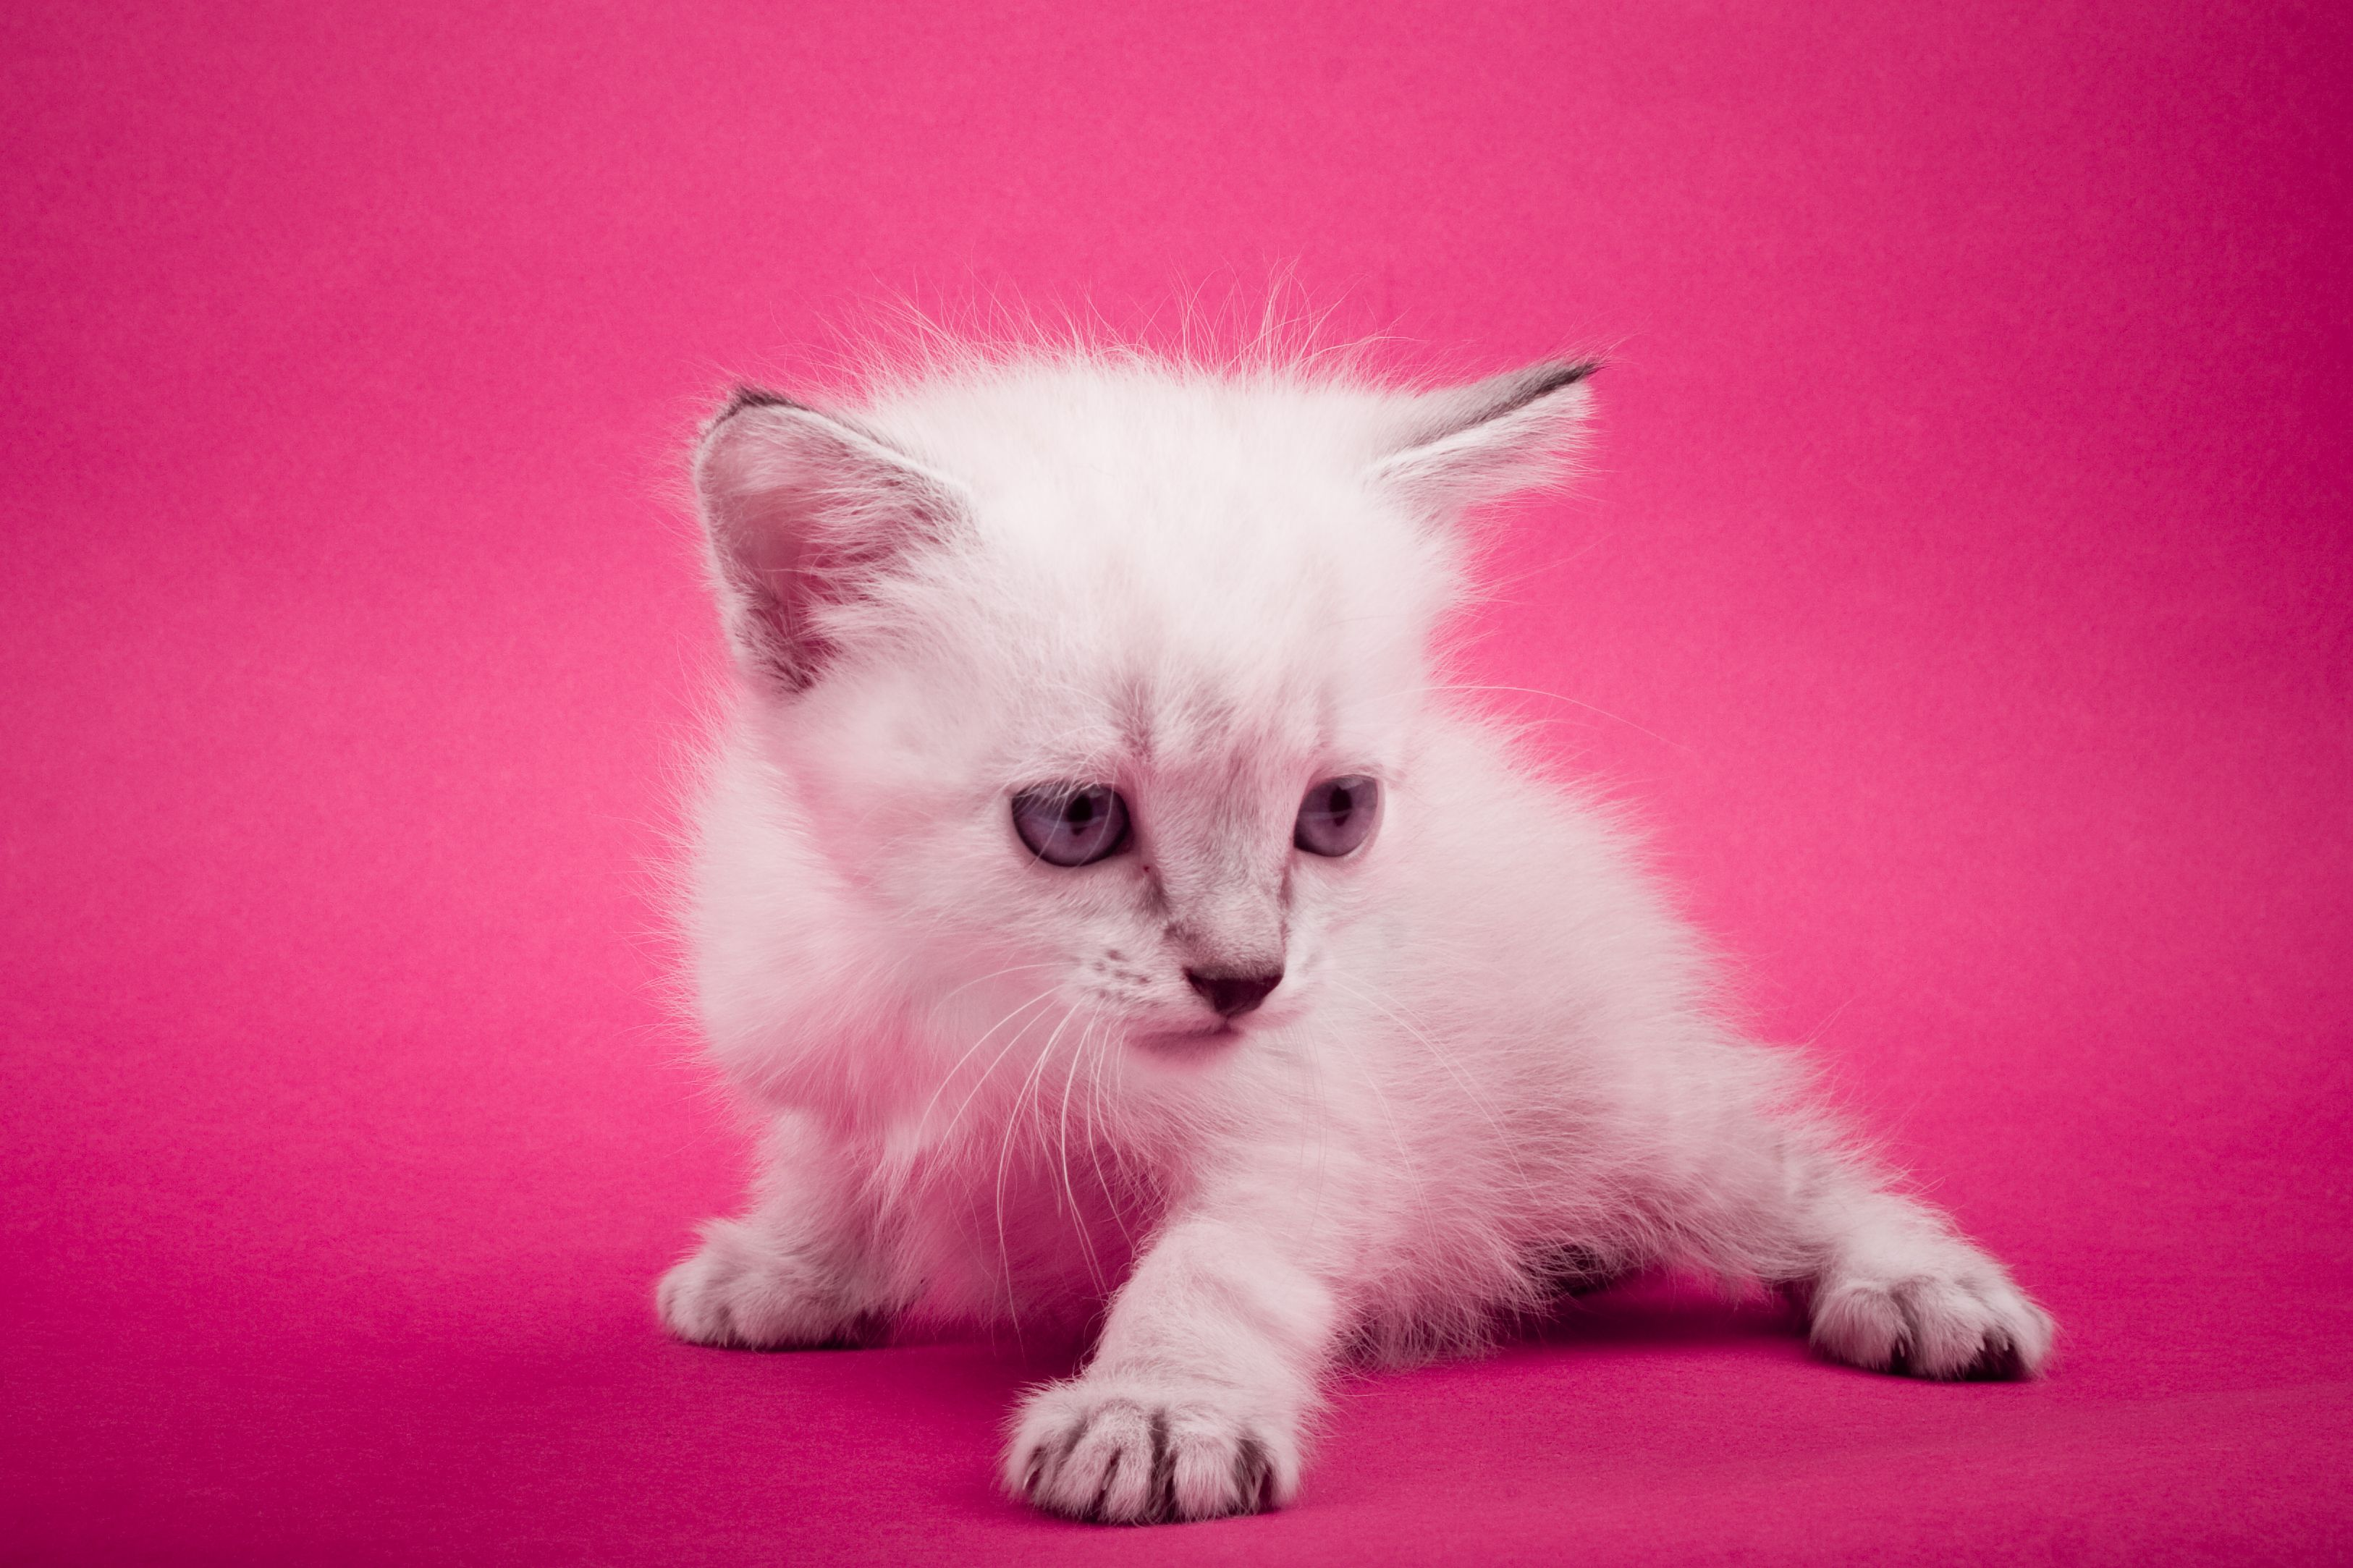 Meow animal pink Cute animals, Newborn kittens, Fluffy